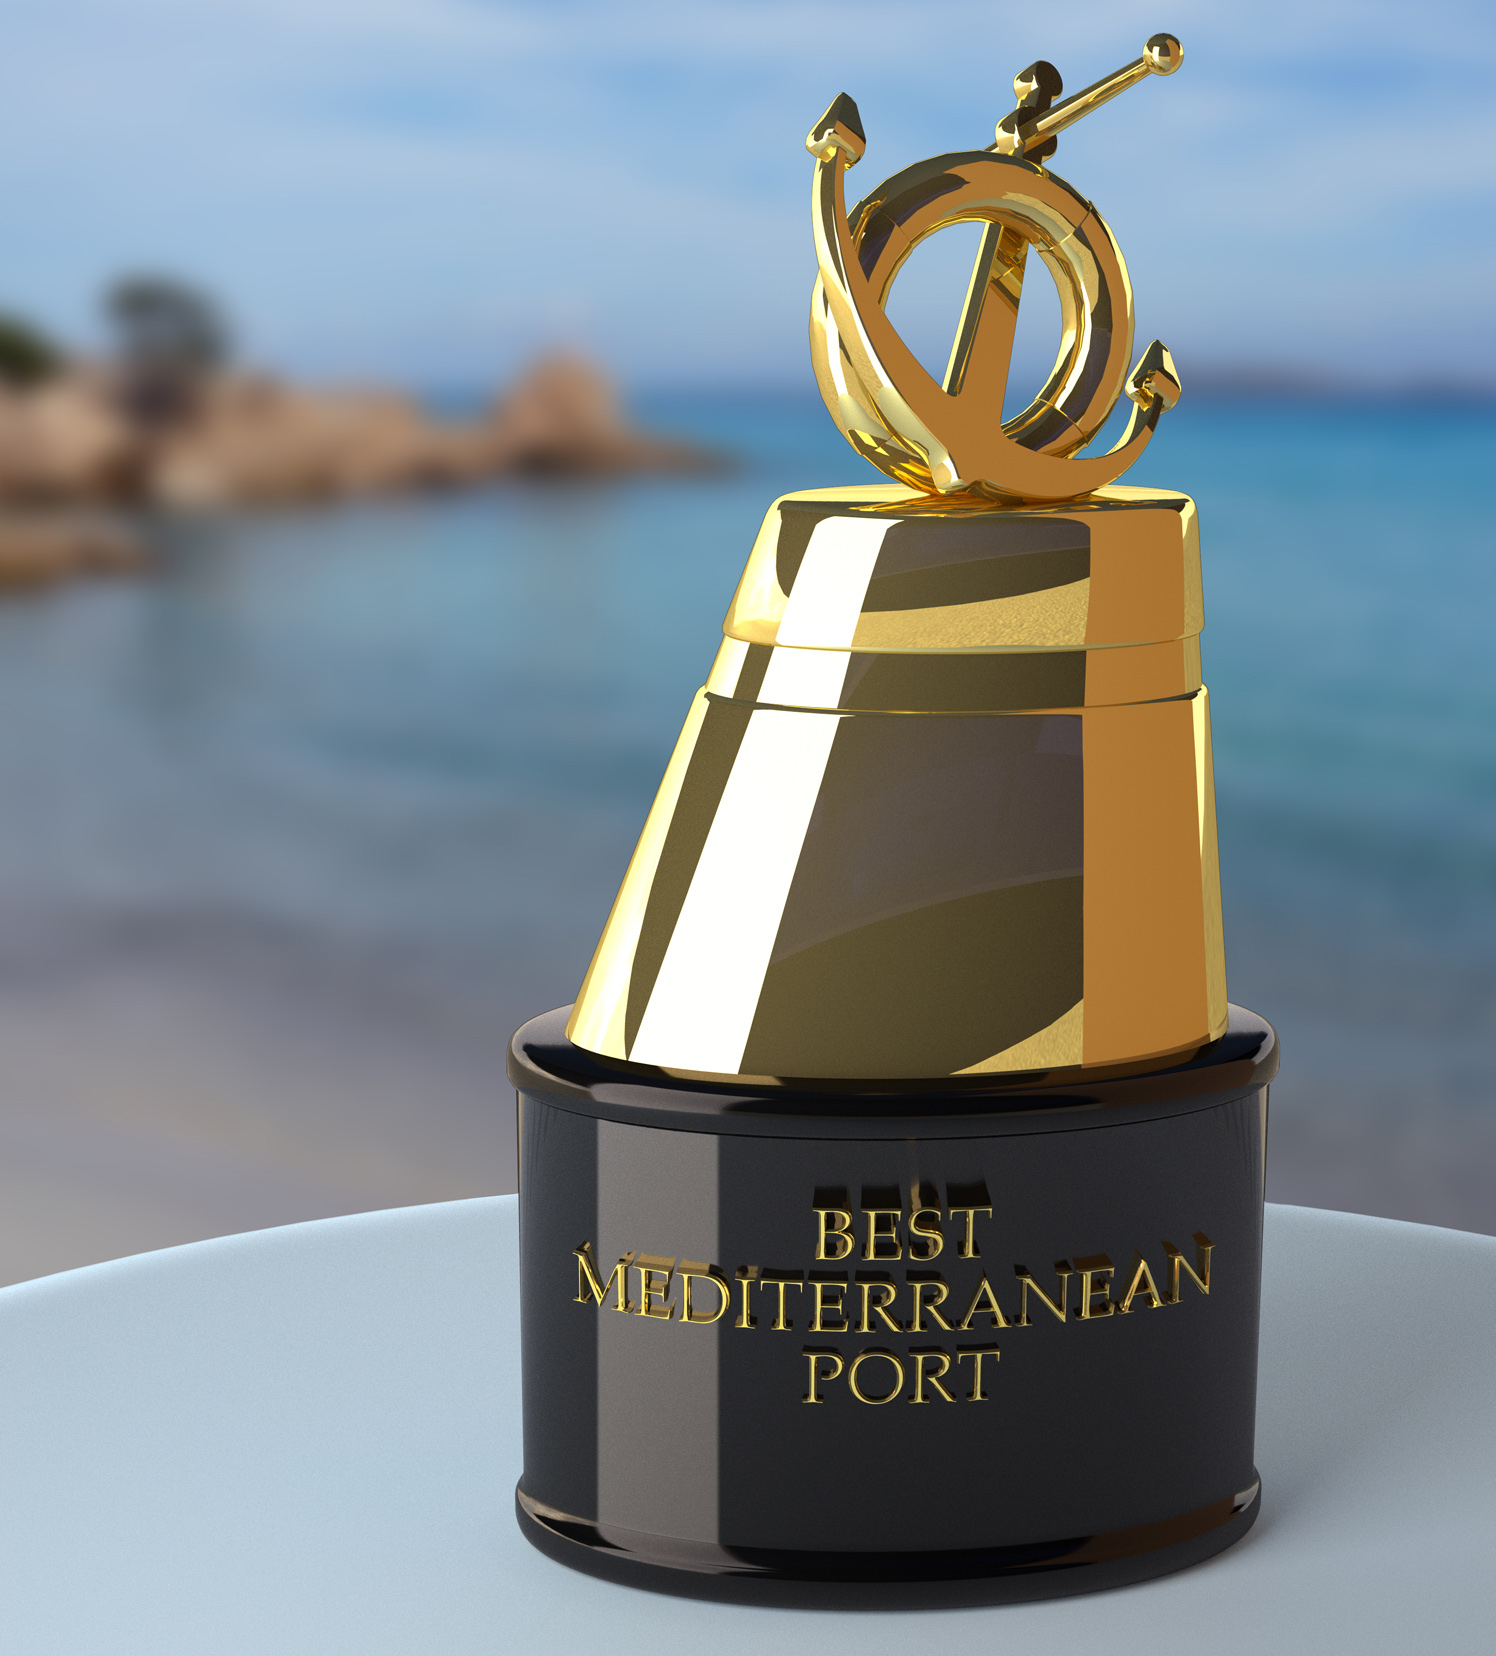 Best Mediterranean Port Award